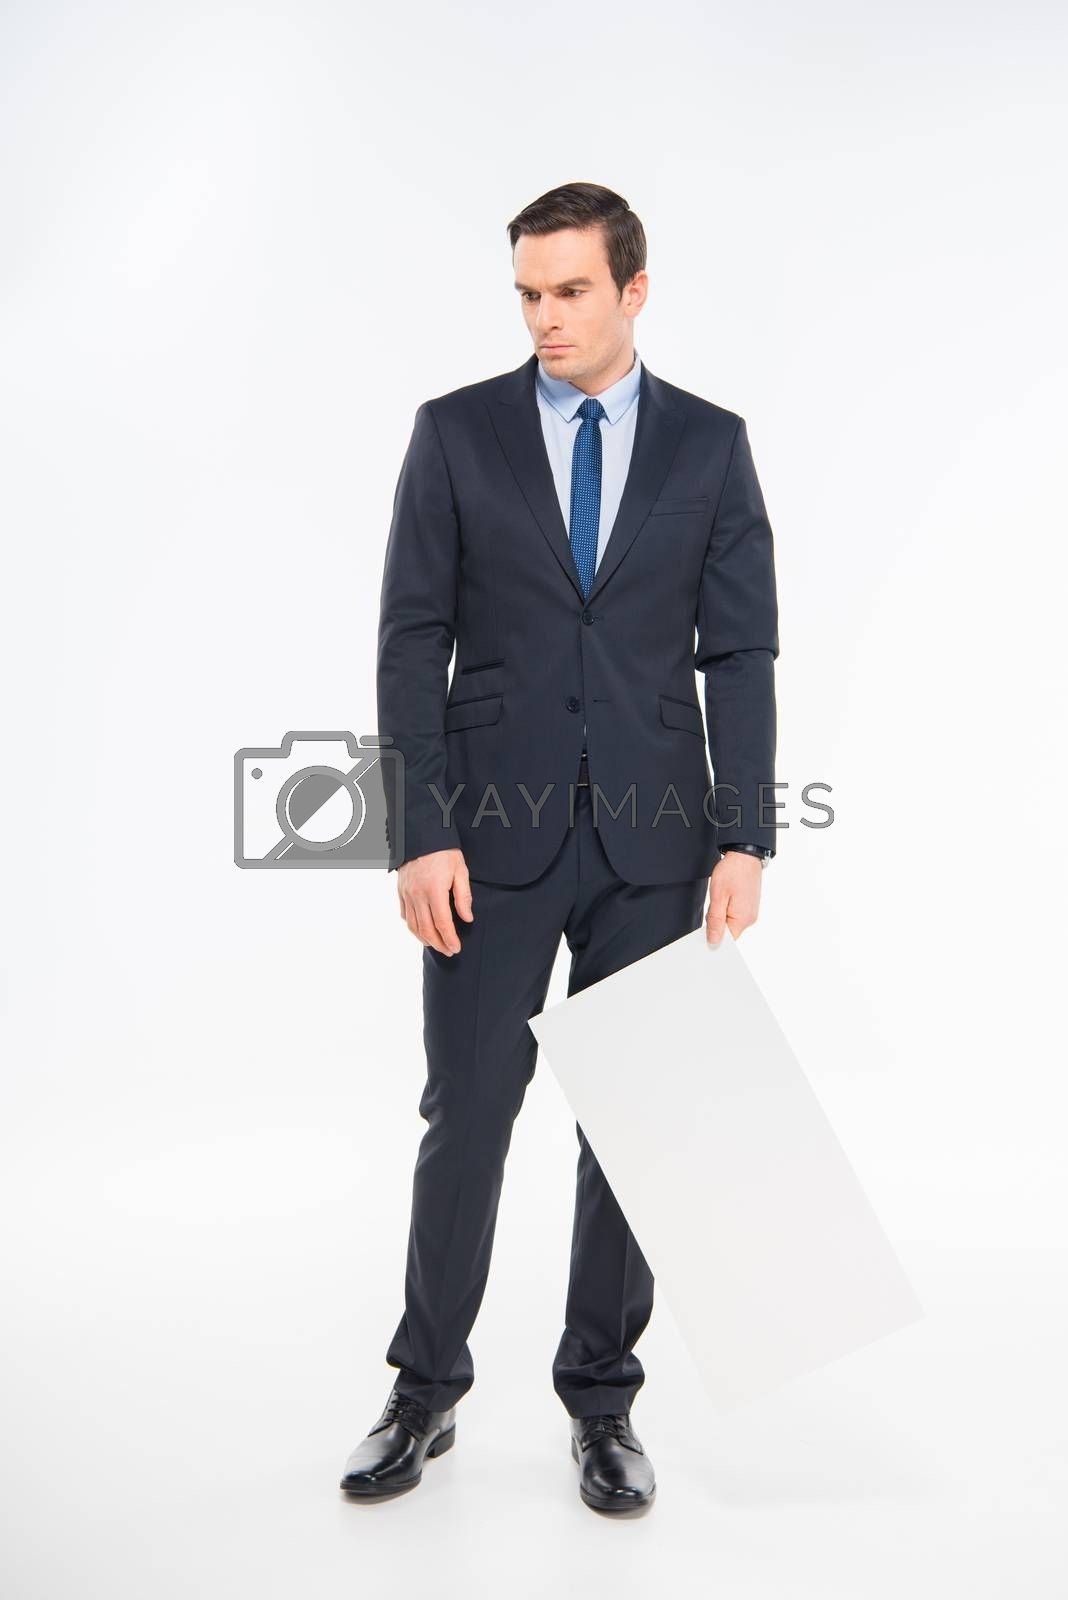 Tired businessman holding blank white card